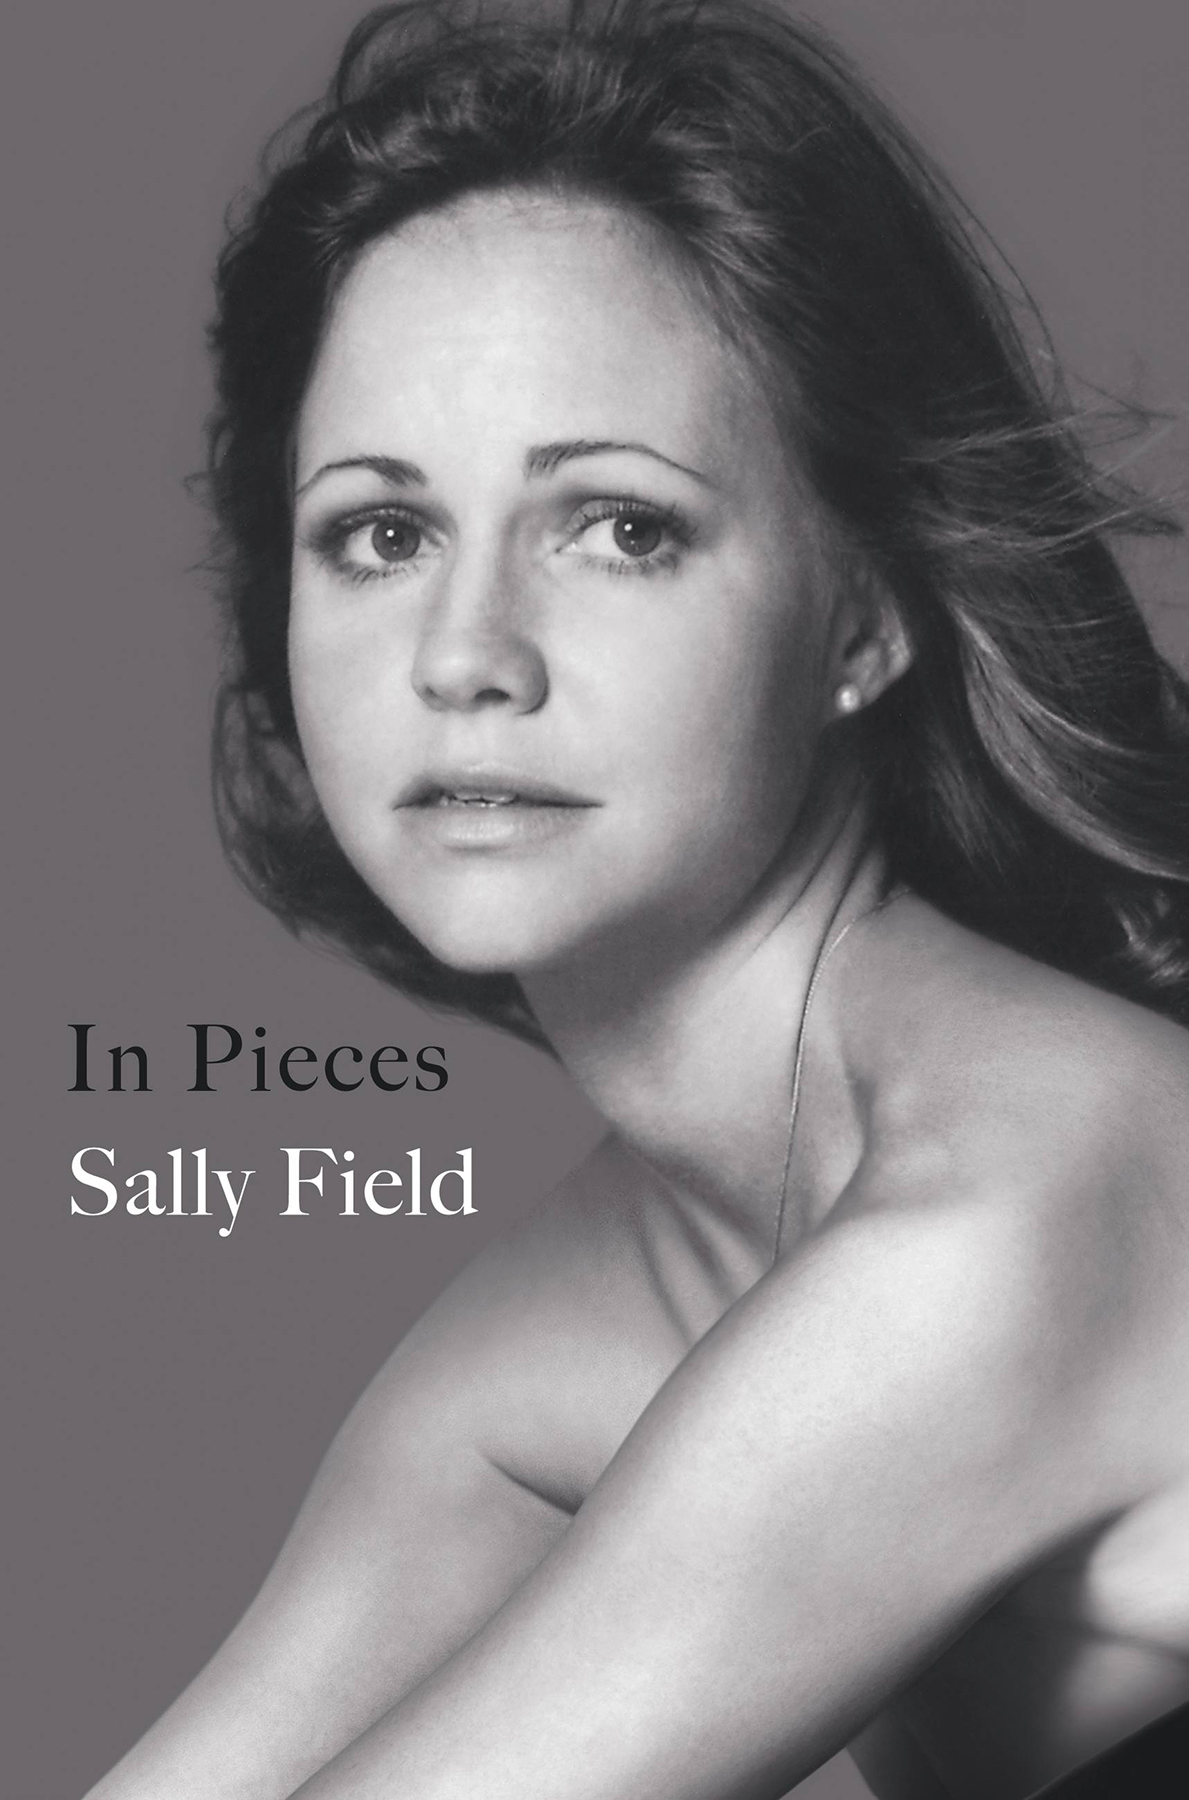 In Pieces - Sally Field [kindle] [mobi]